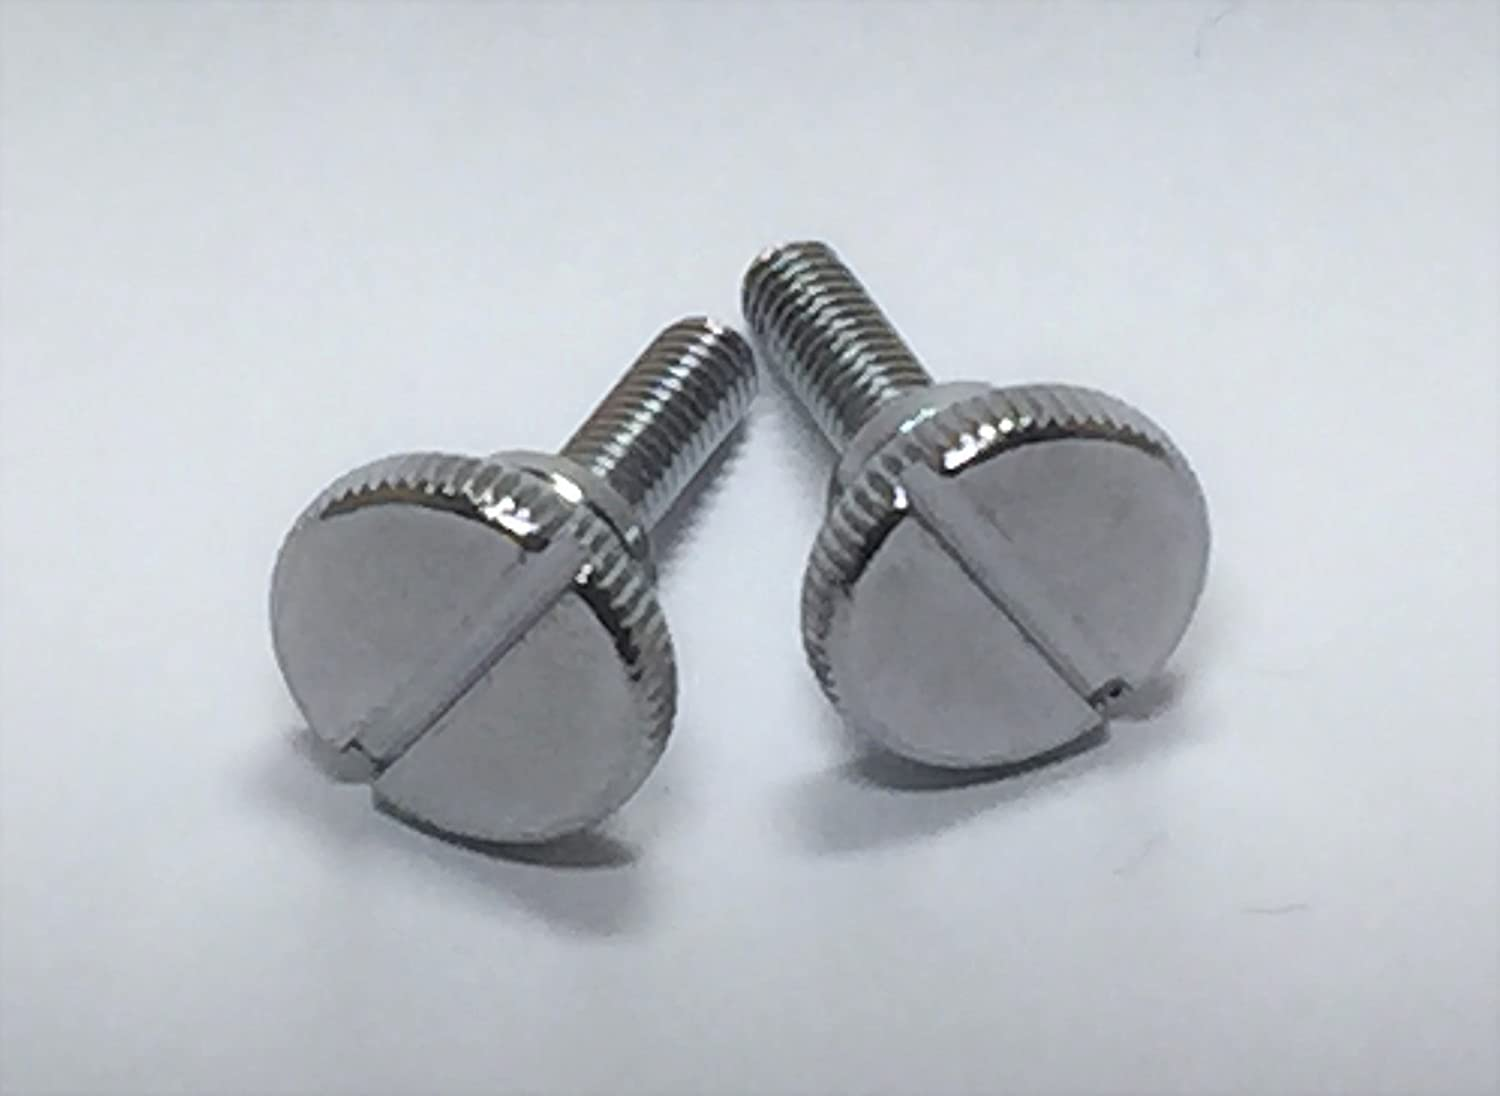 Thumb Screw for Industrial Sewing Machine Presser Foot. 2pcs Secret Sewing